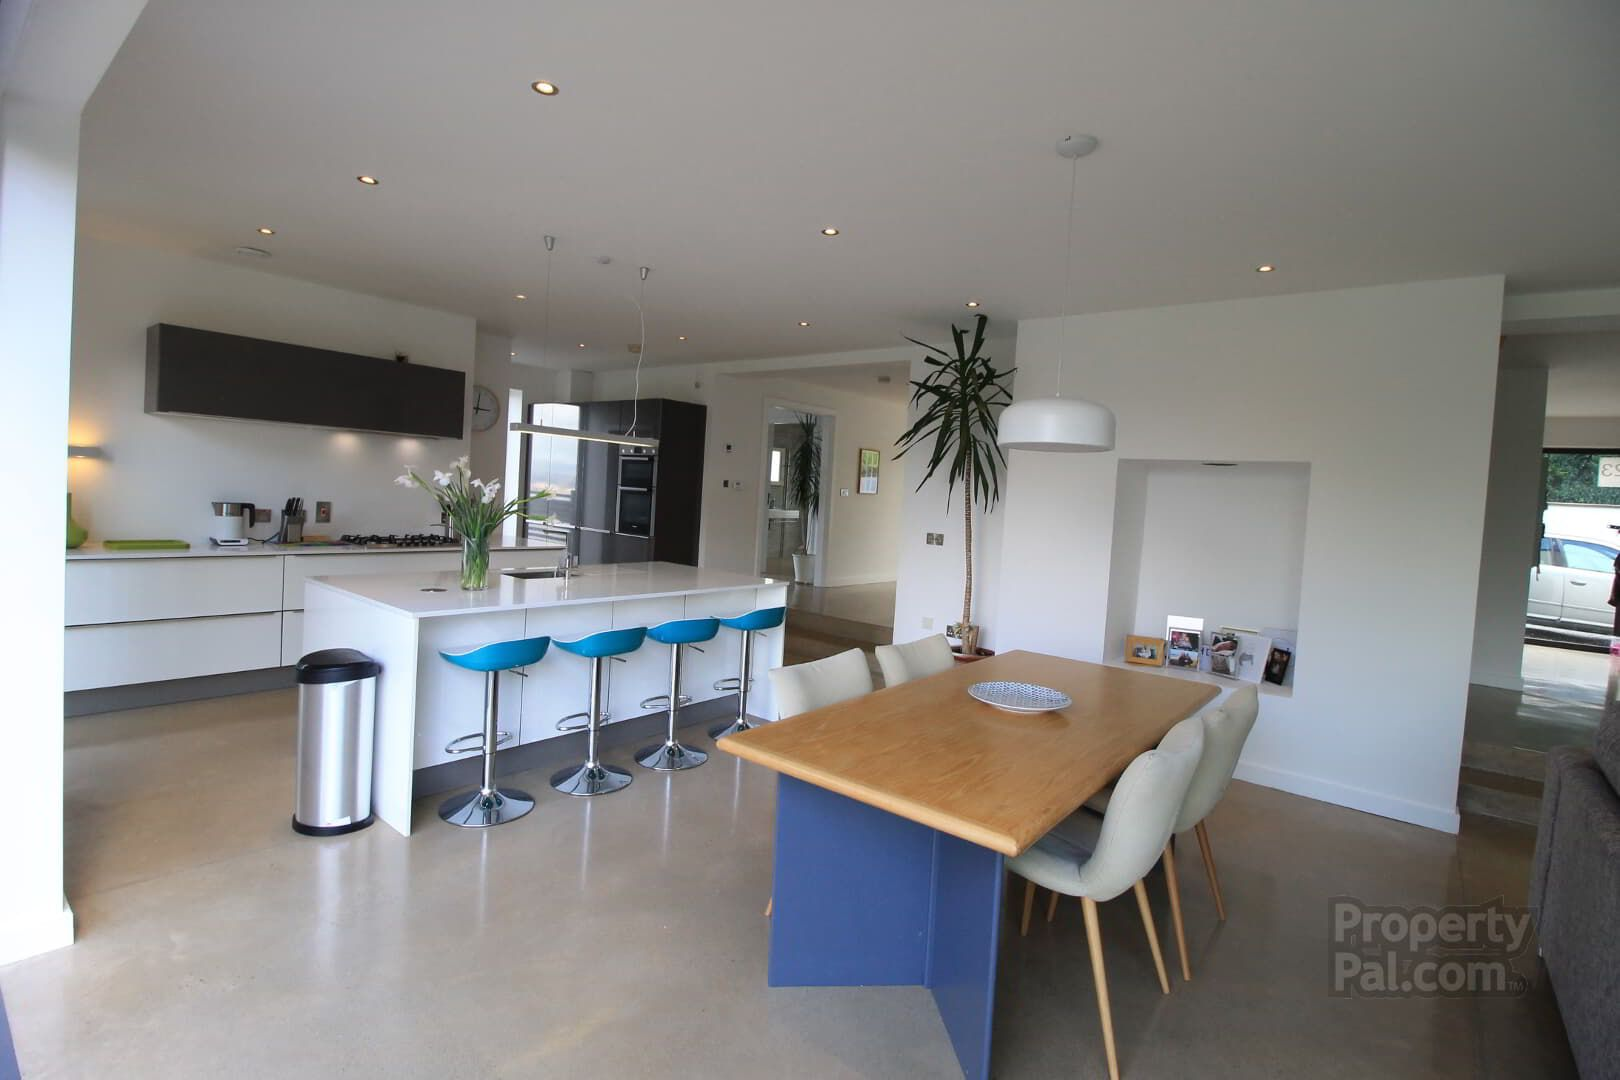 23 Woodside Road, Derry Londonderry, Contemporary